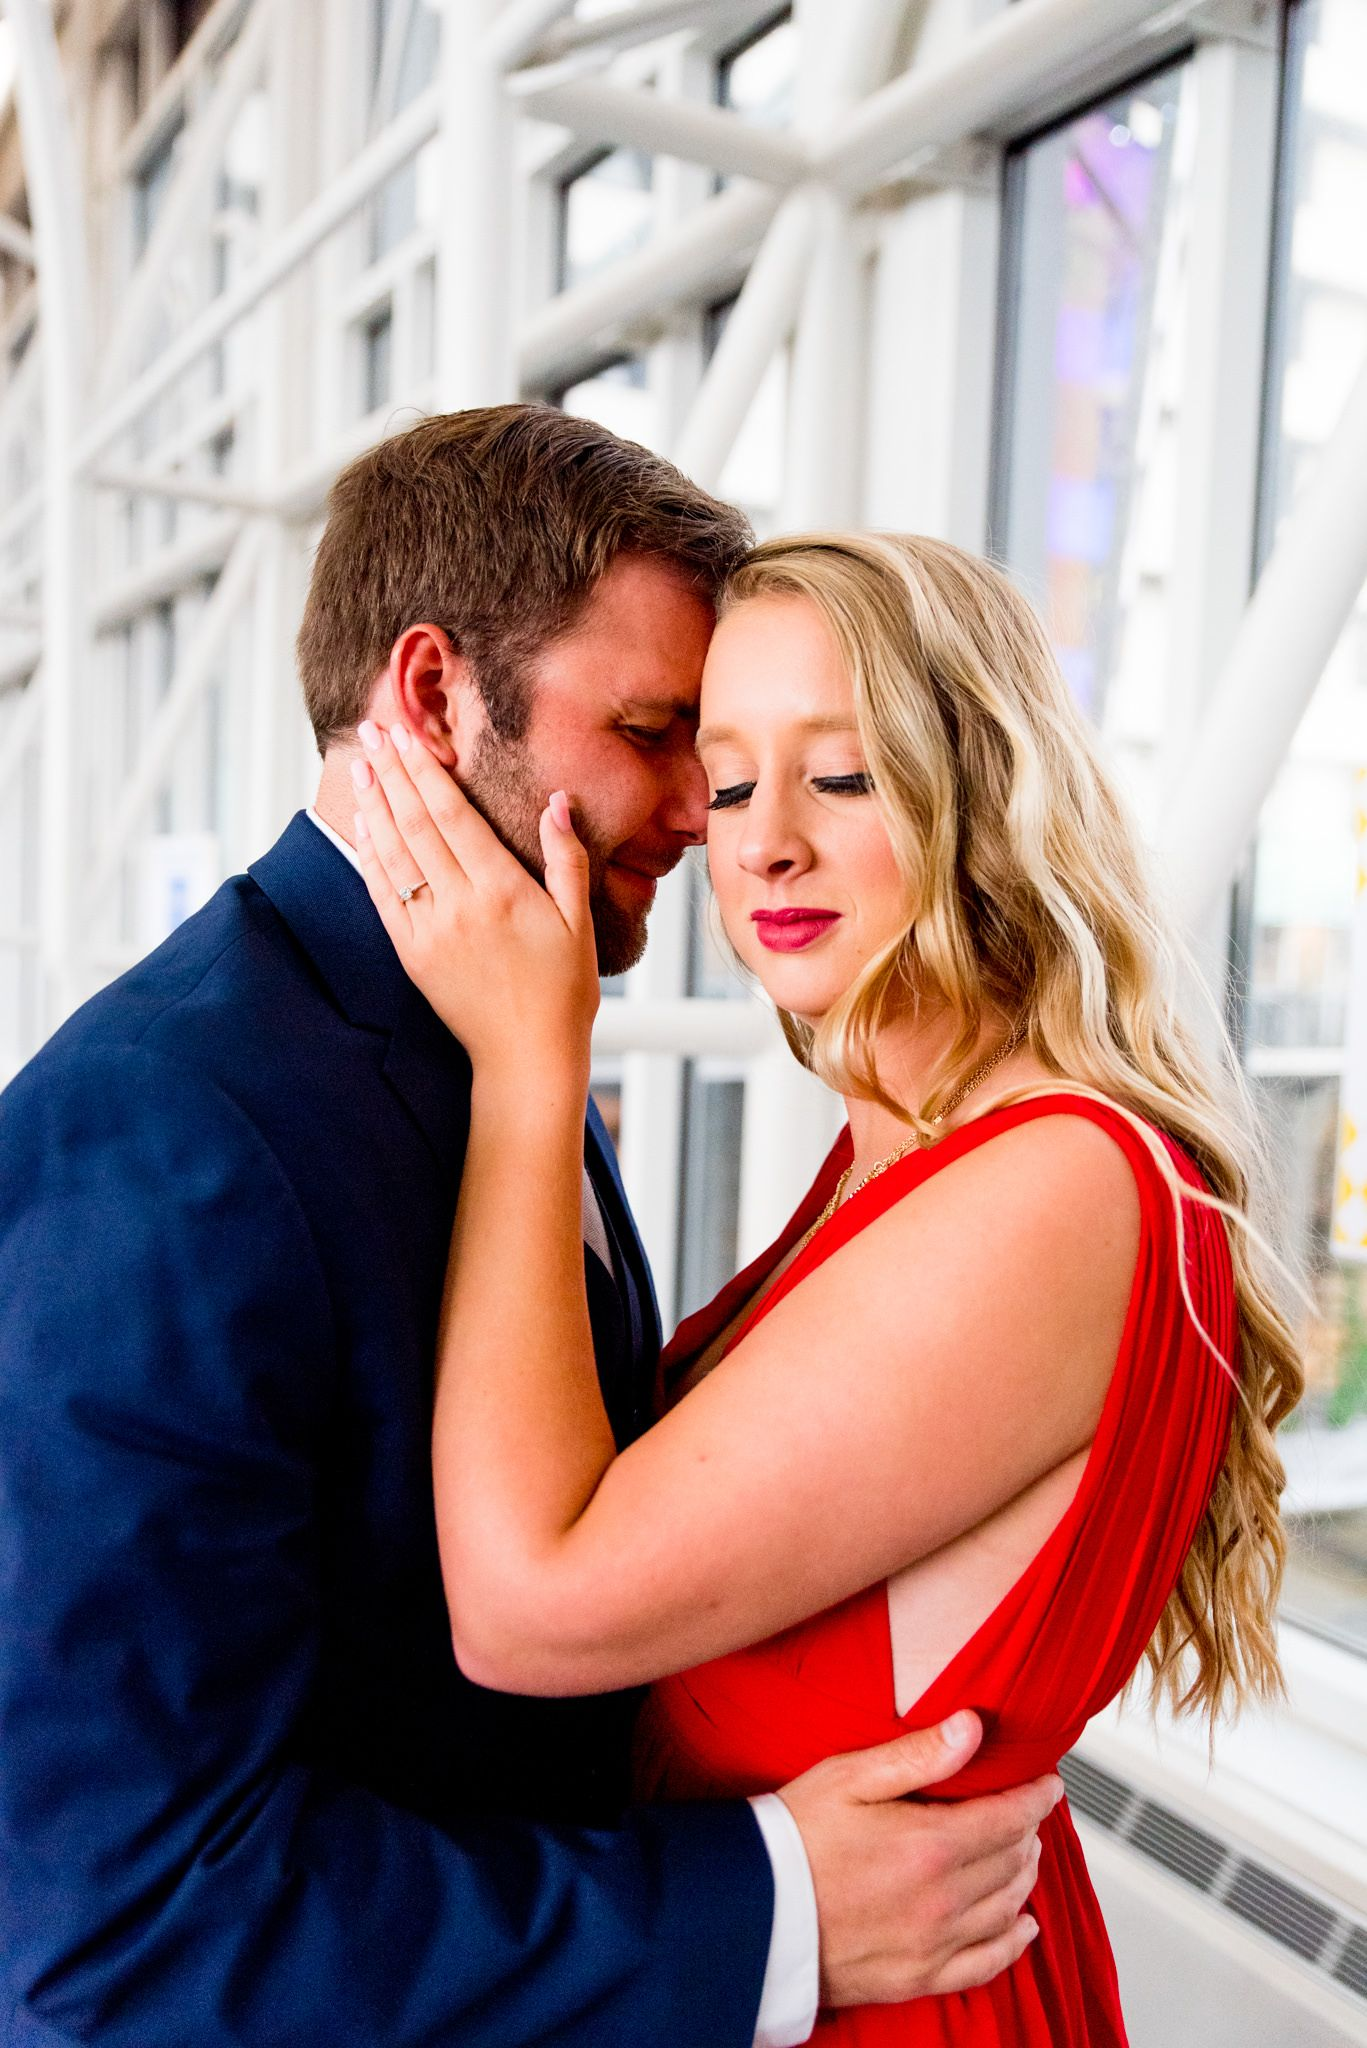 blonde woman in red dress looking at camera while fiance in navy suit rests on her forehead